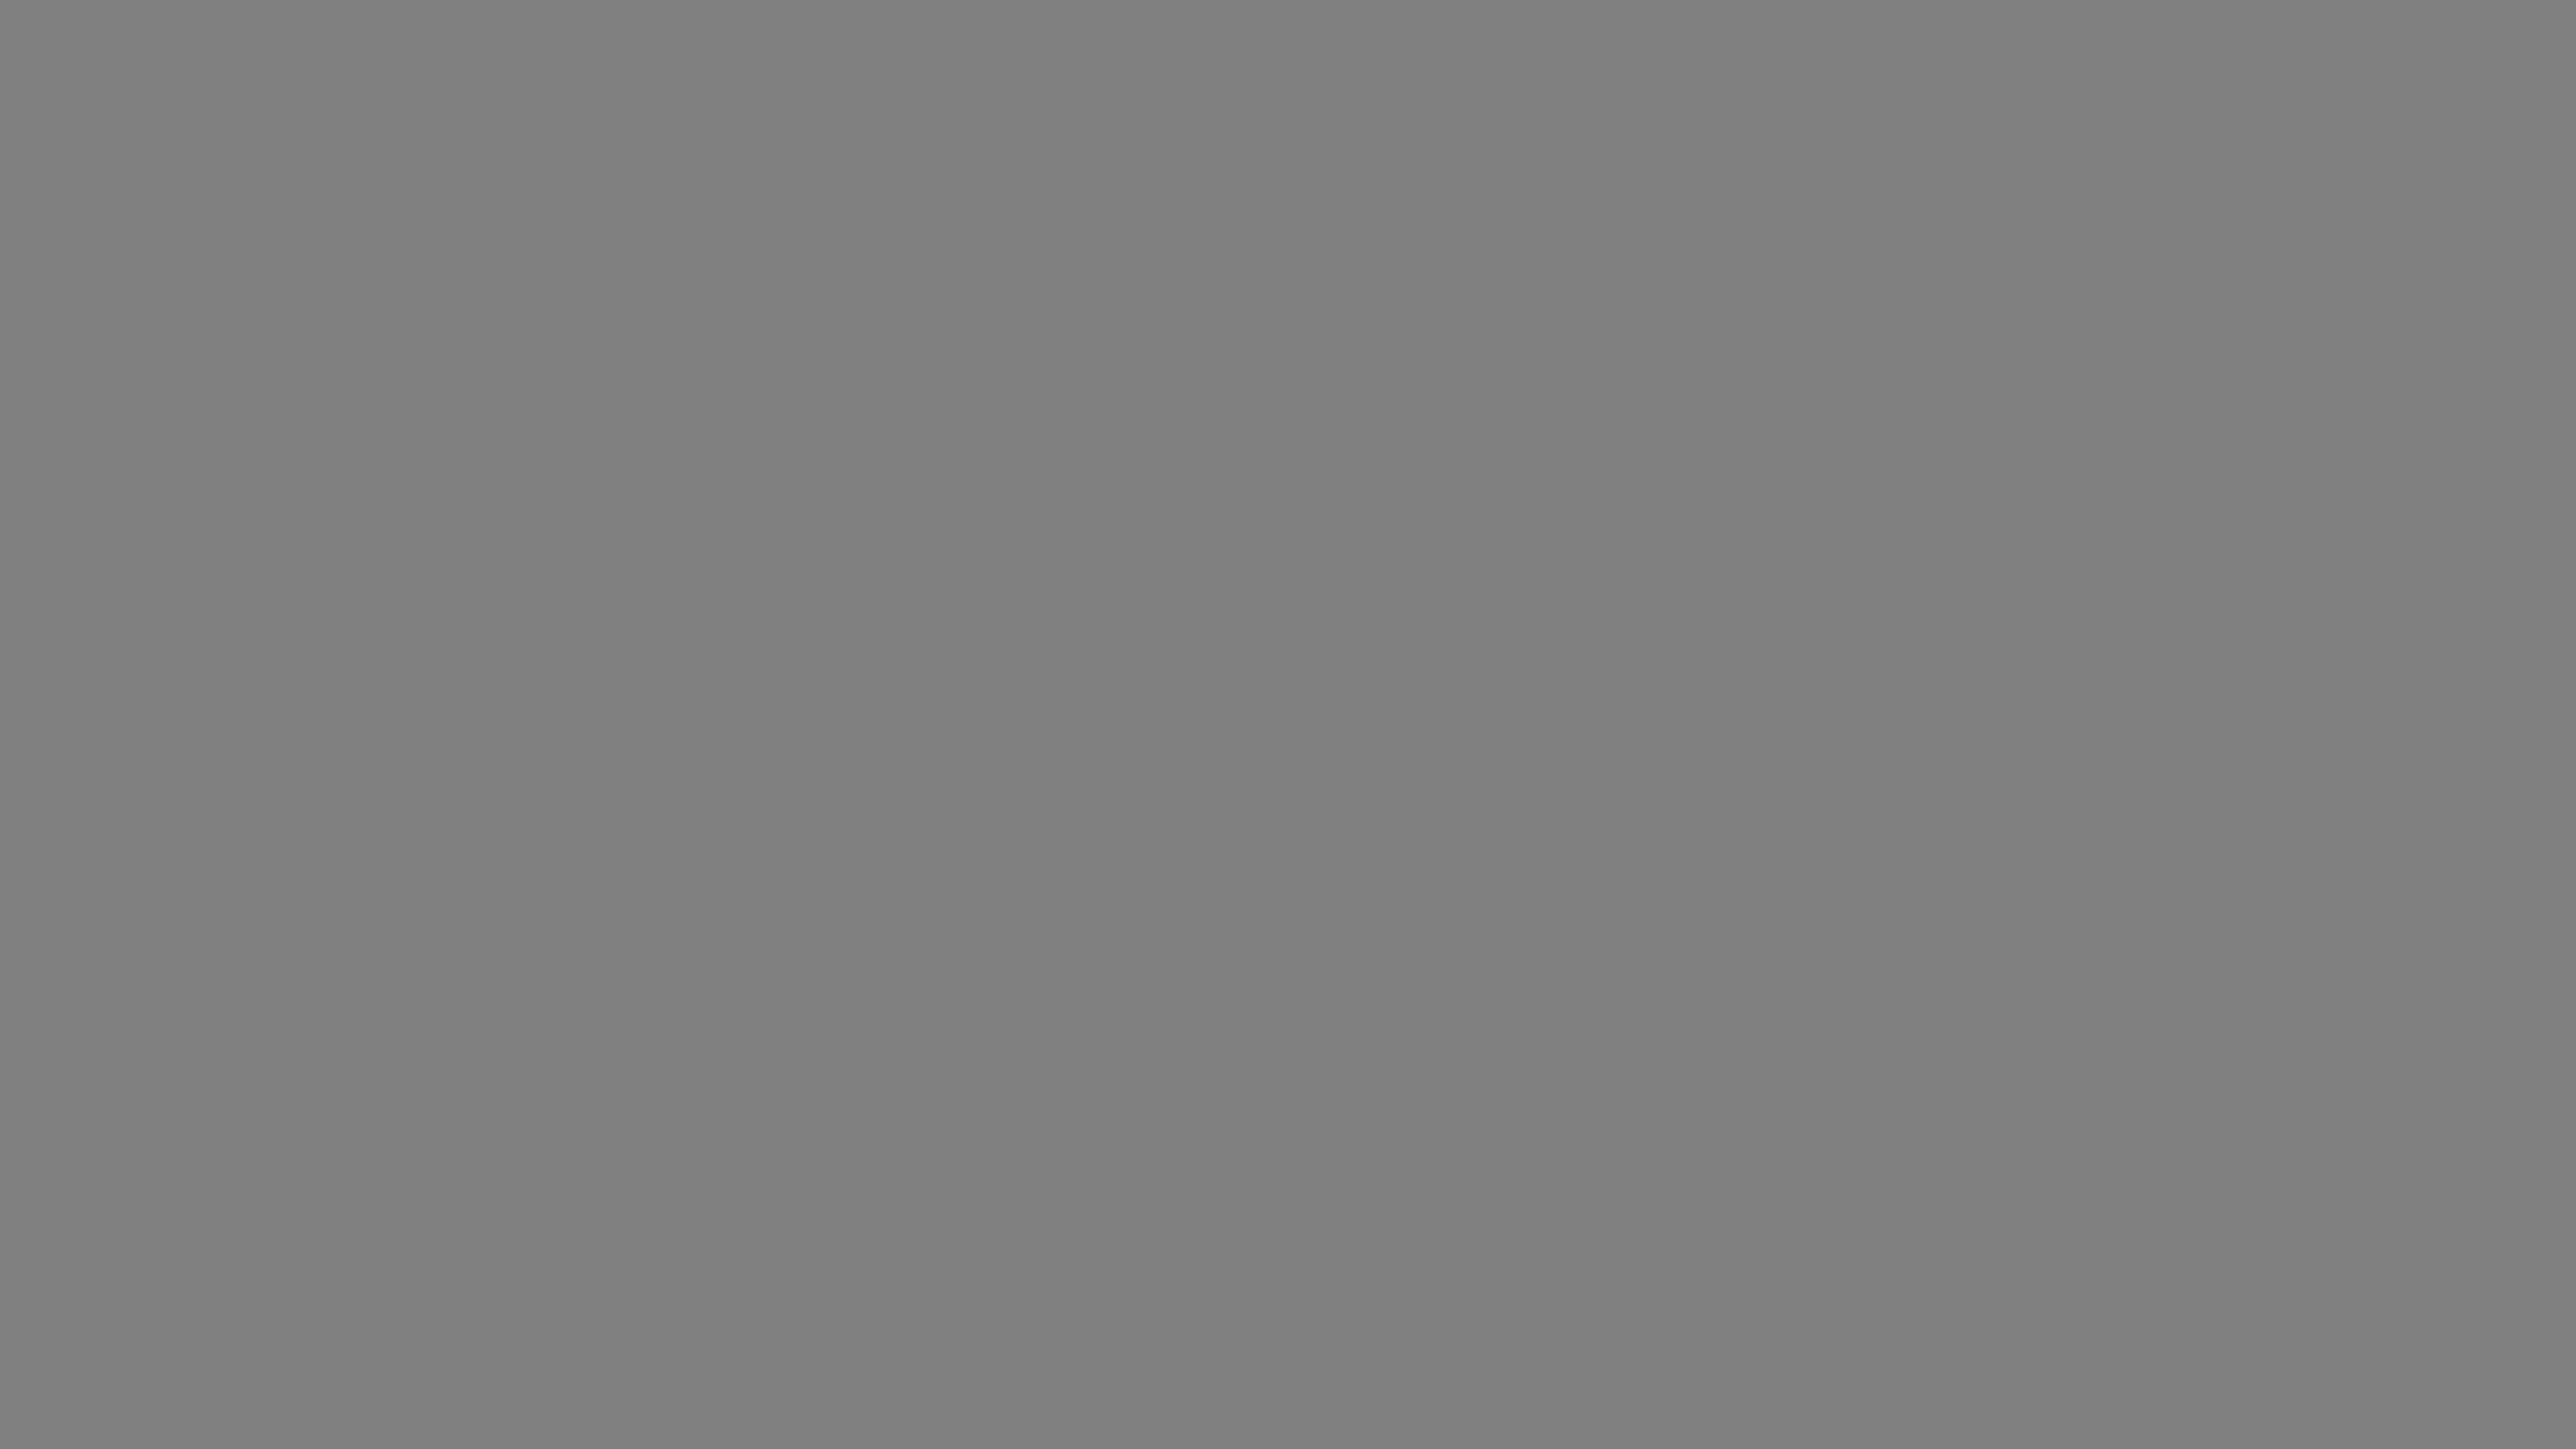 4096x2304 Gray Web Gray Solid Color Background